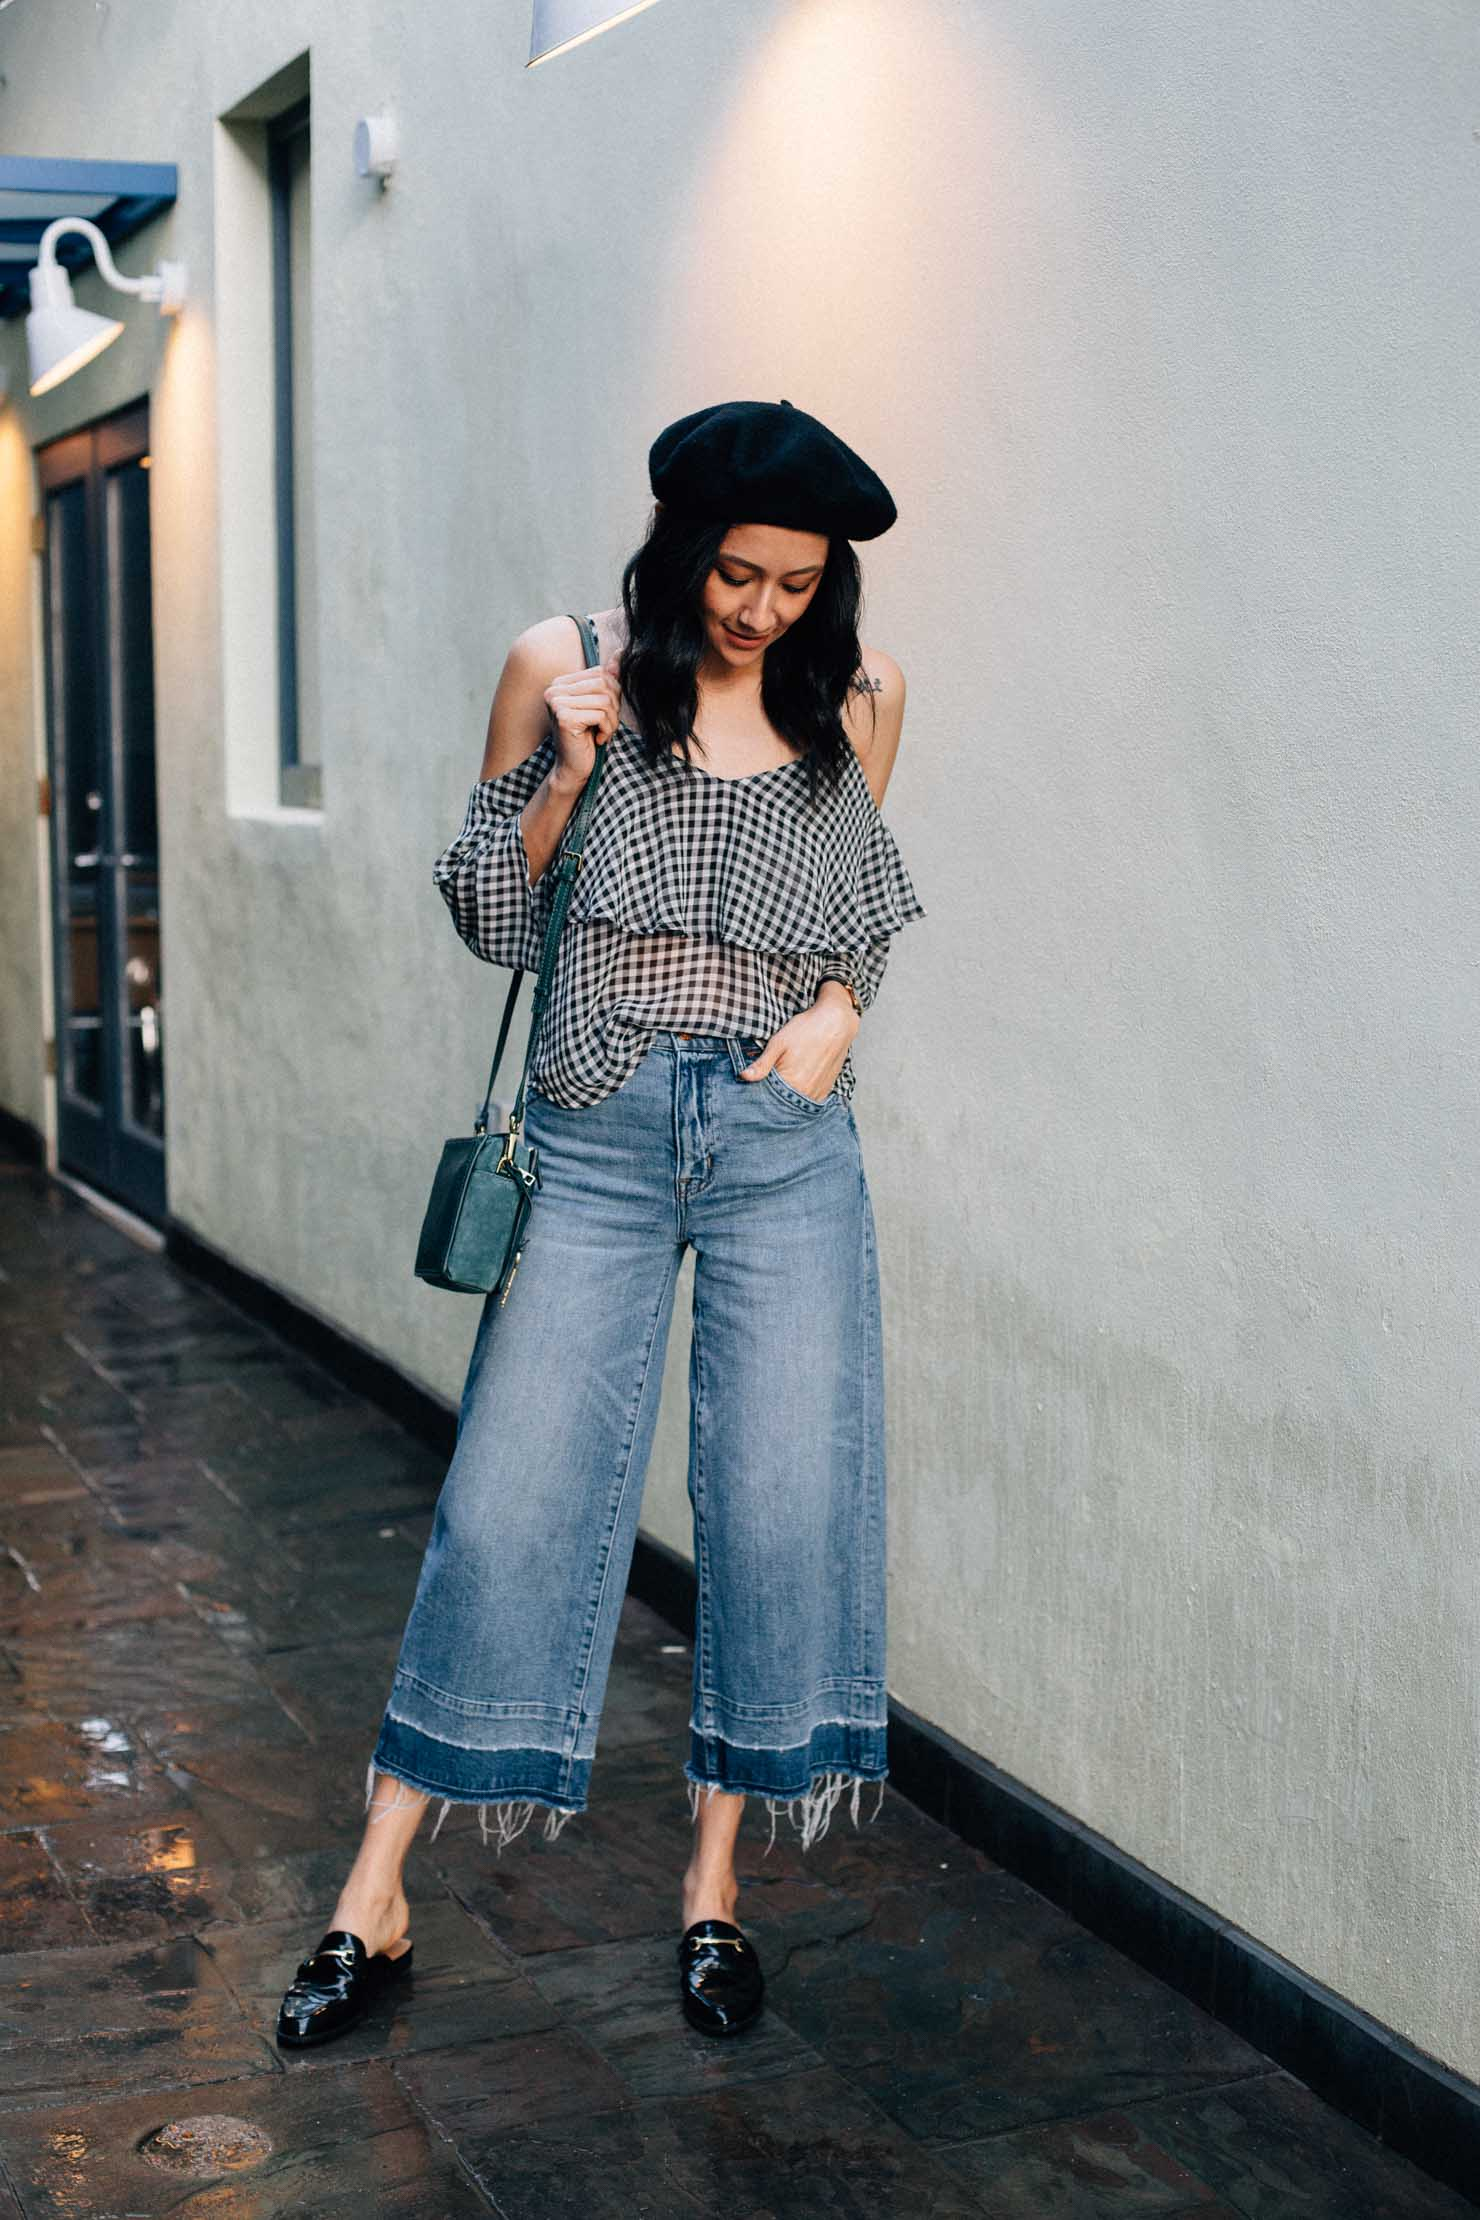 Fashion blogger Lilly Beltran wears wide leg denim with a gingham top, loafer mules and a black beret.